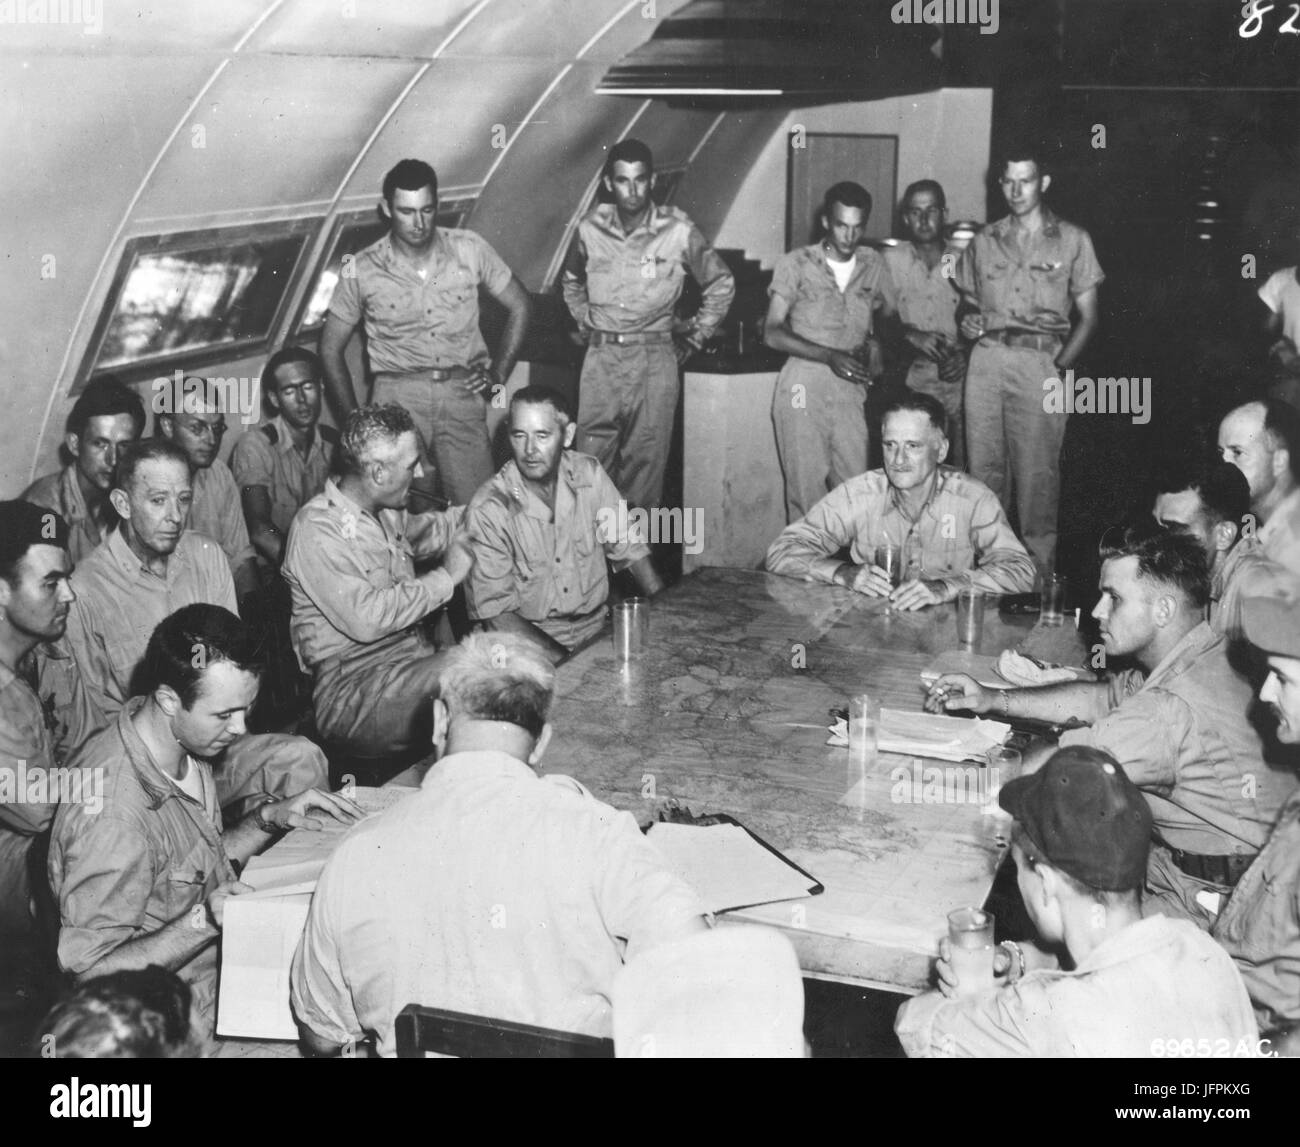 Lt. General Nathan Twining, Lt. General Barney M. Giles and General Carl Spaatz (left to right around table) attend - Stock Image